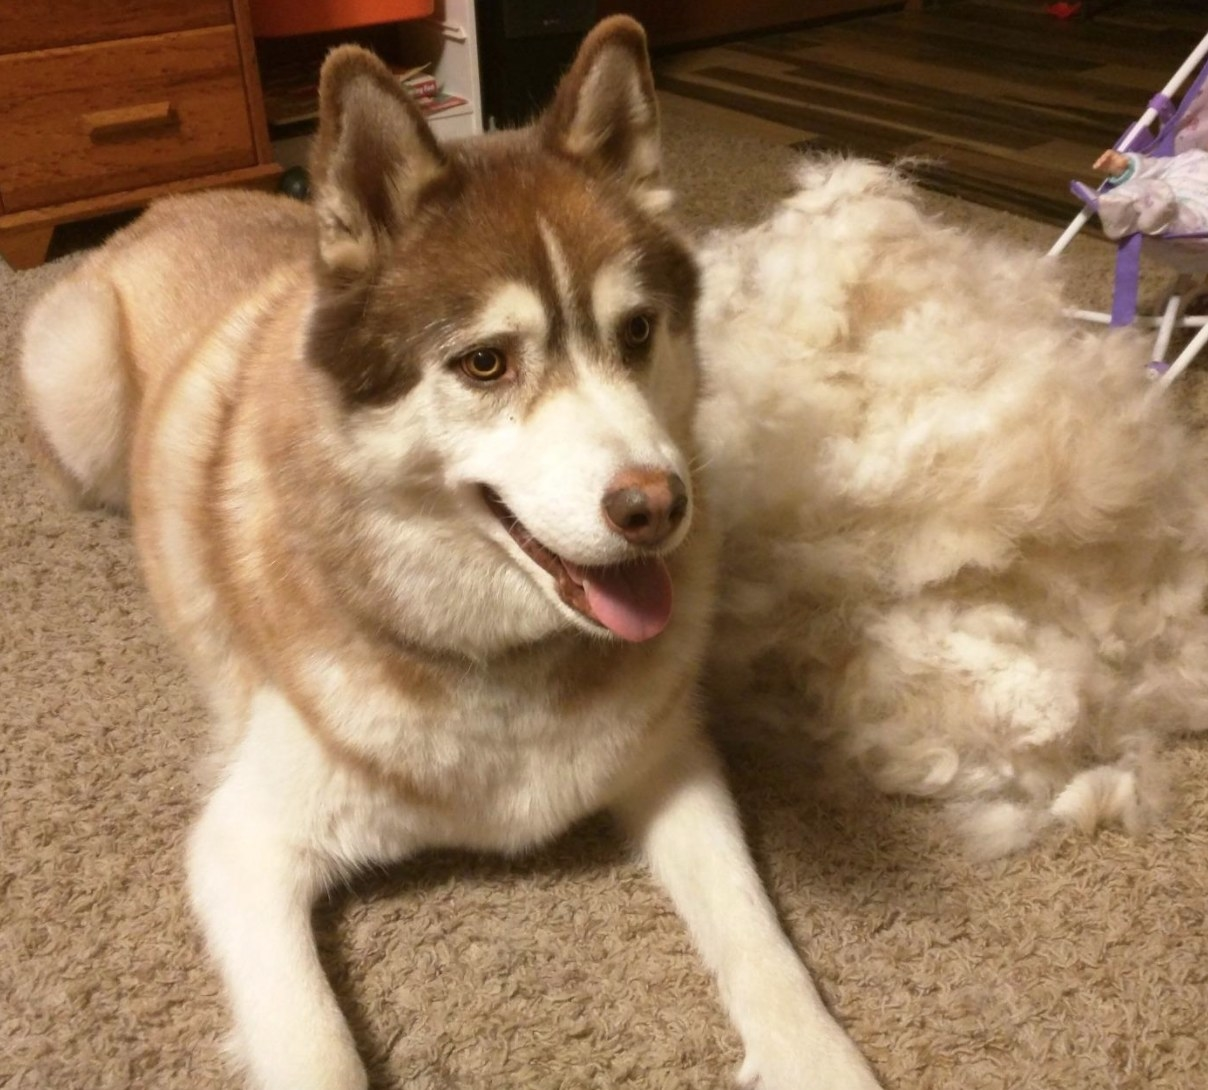 The result of the grooming rake